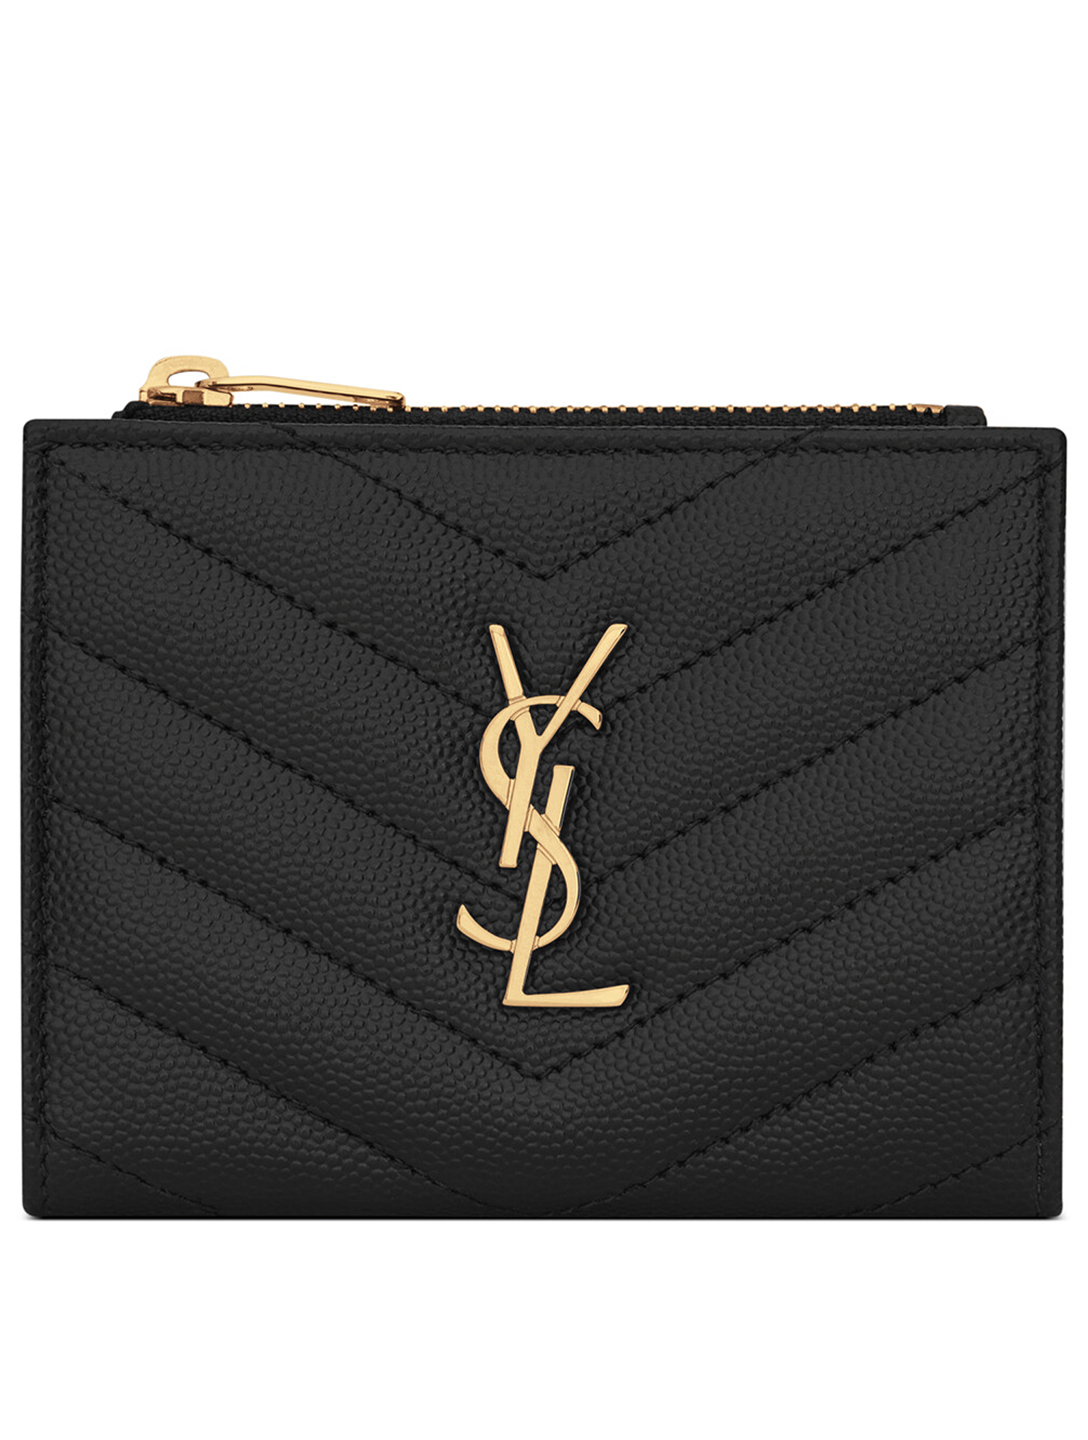 SAINT LAURENT YSL Monogram Leather Zipped Card Holder Women's Black